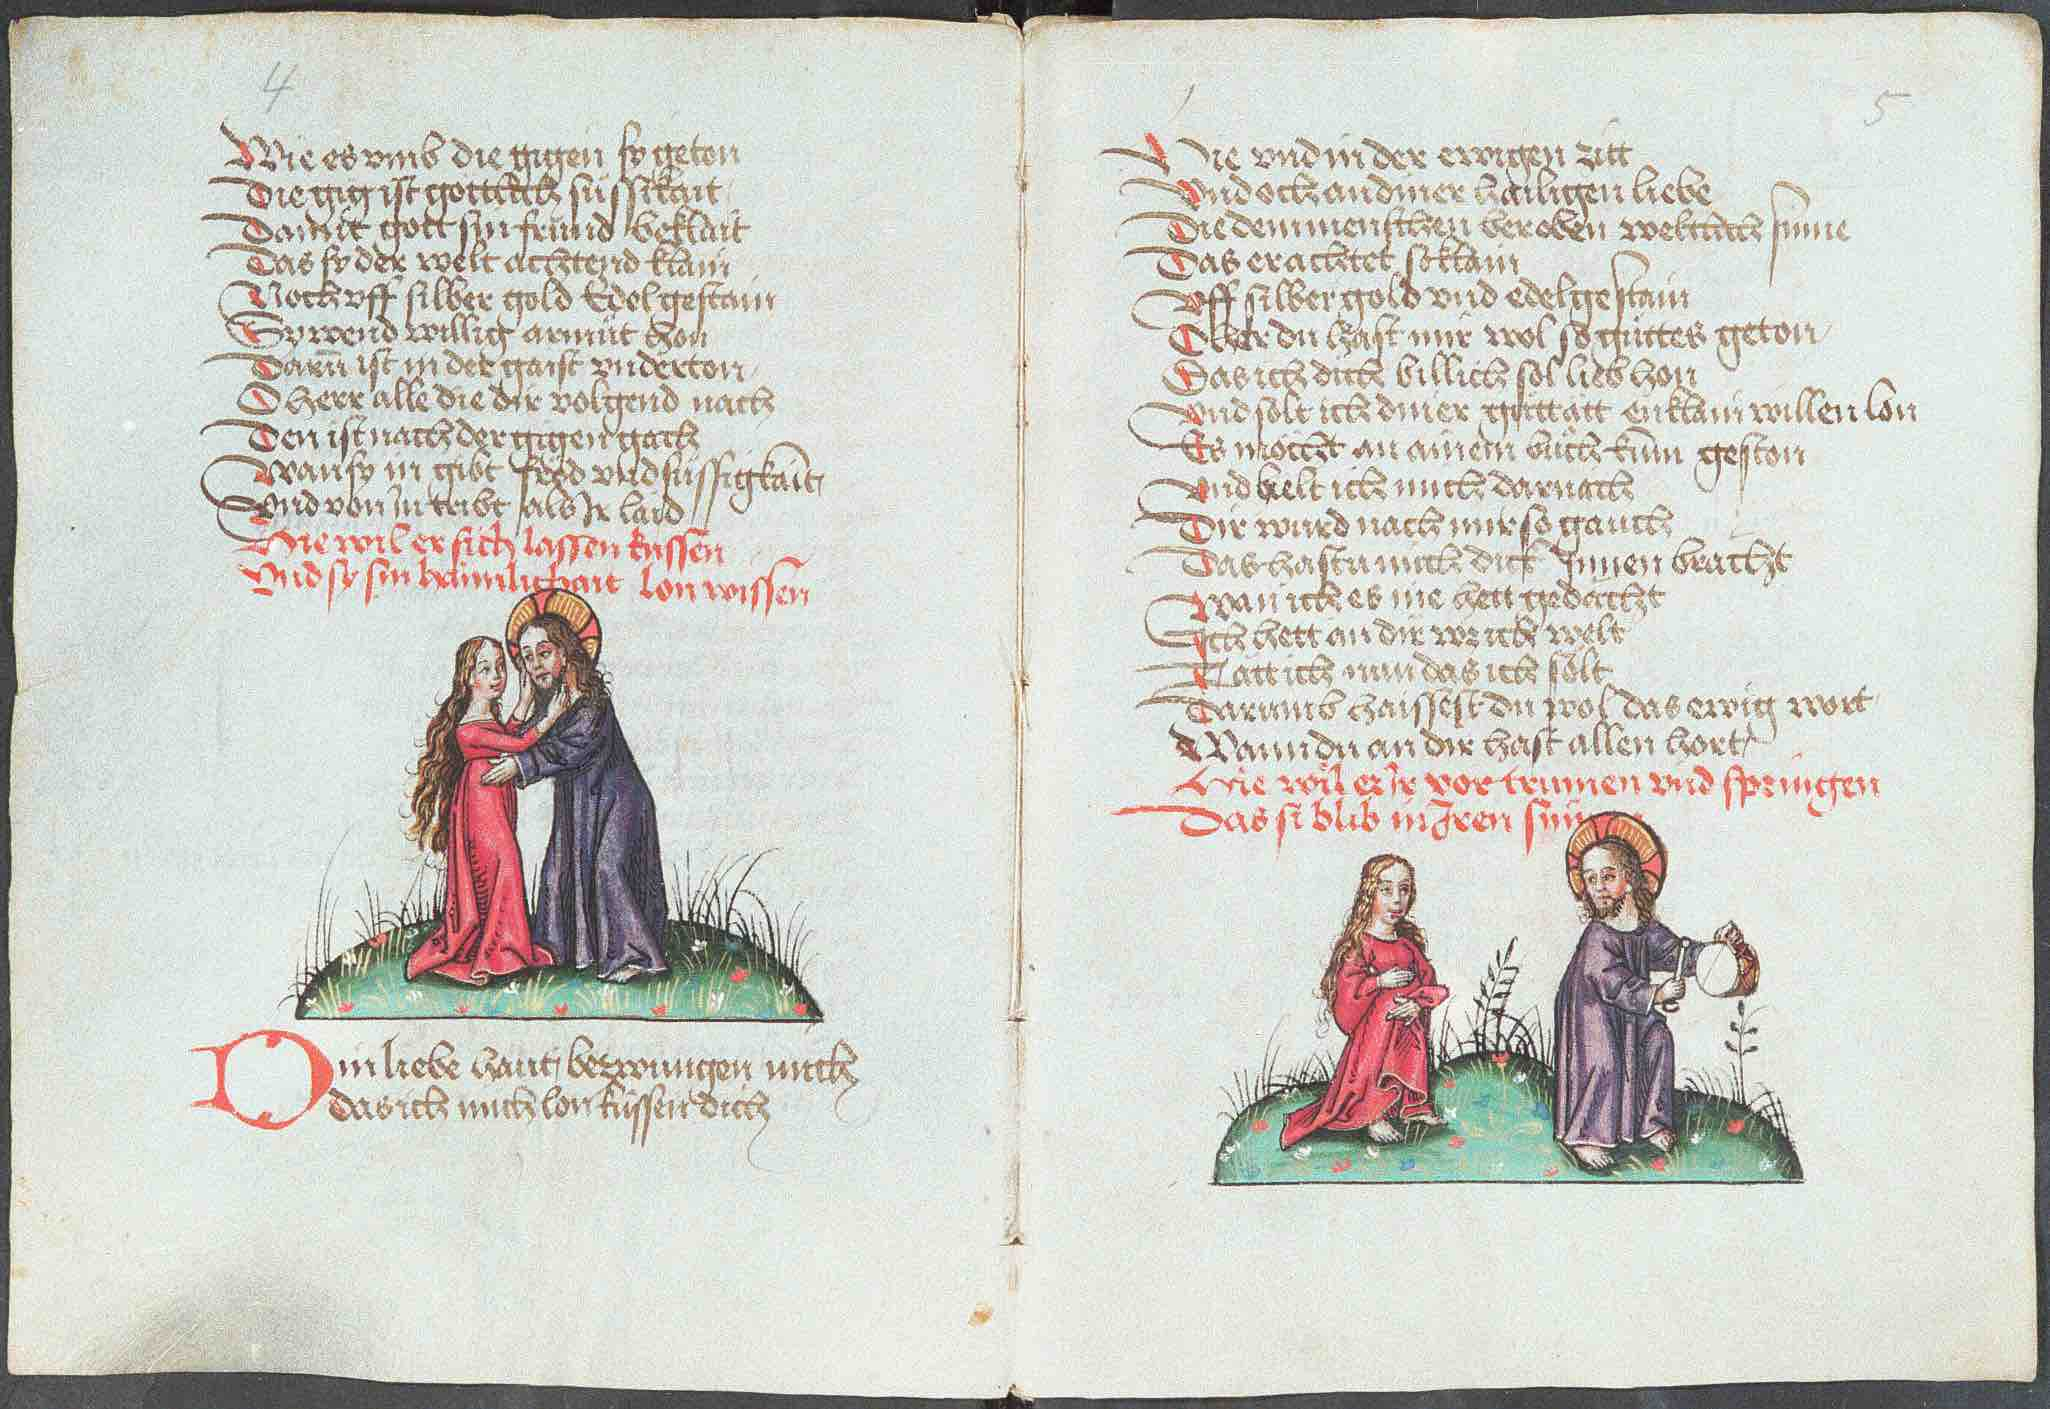 15th-c. German manuscript from Martinus-Bibliothek, Mainz (HMML 35671)